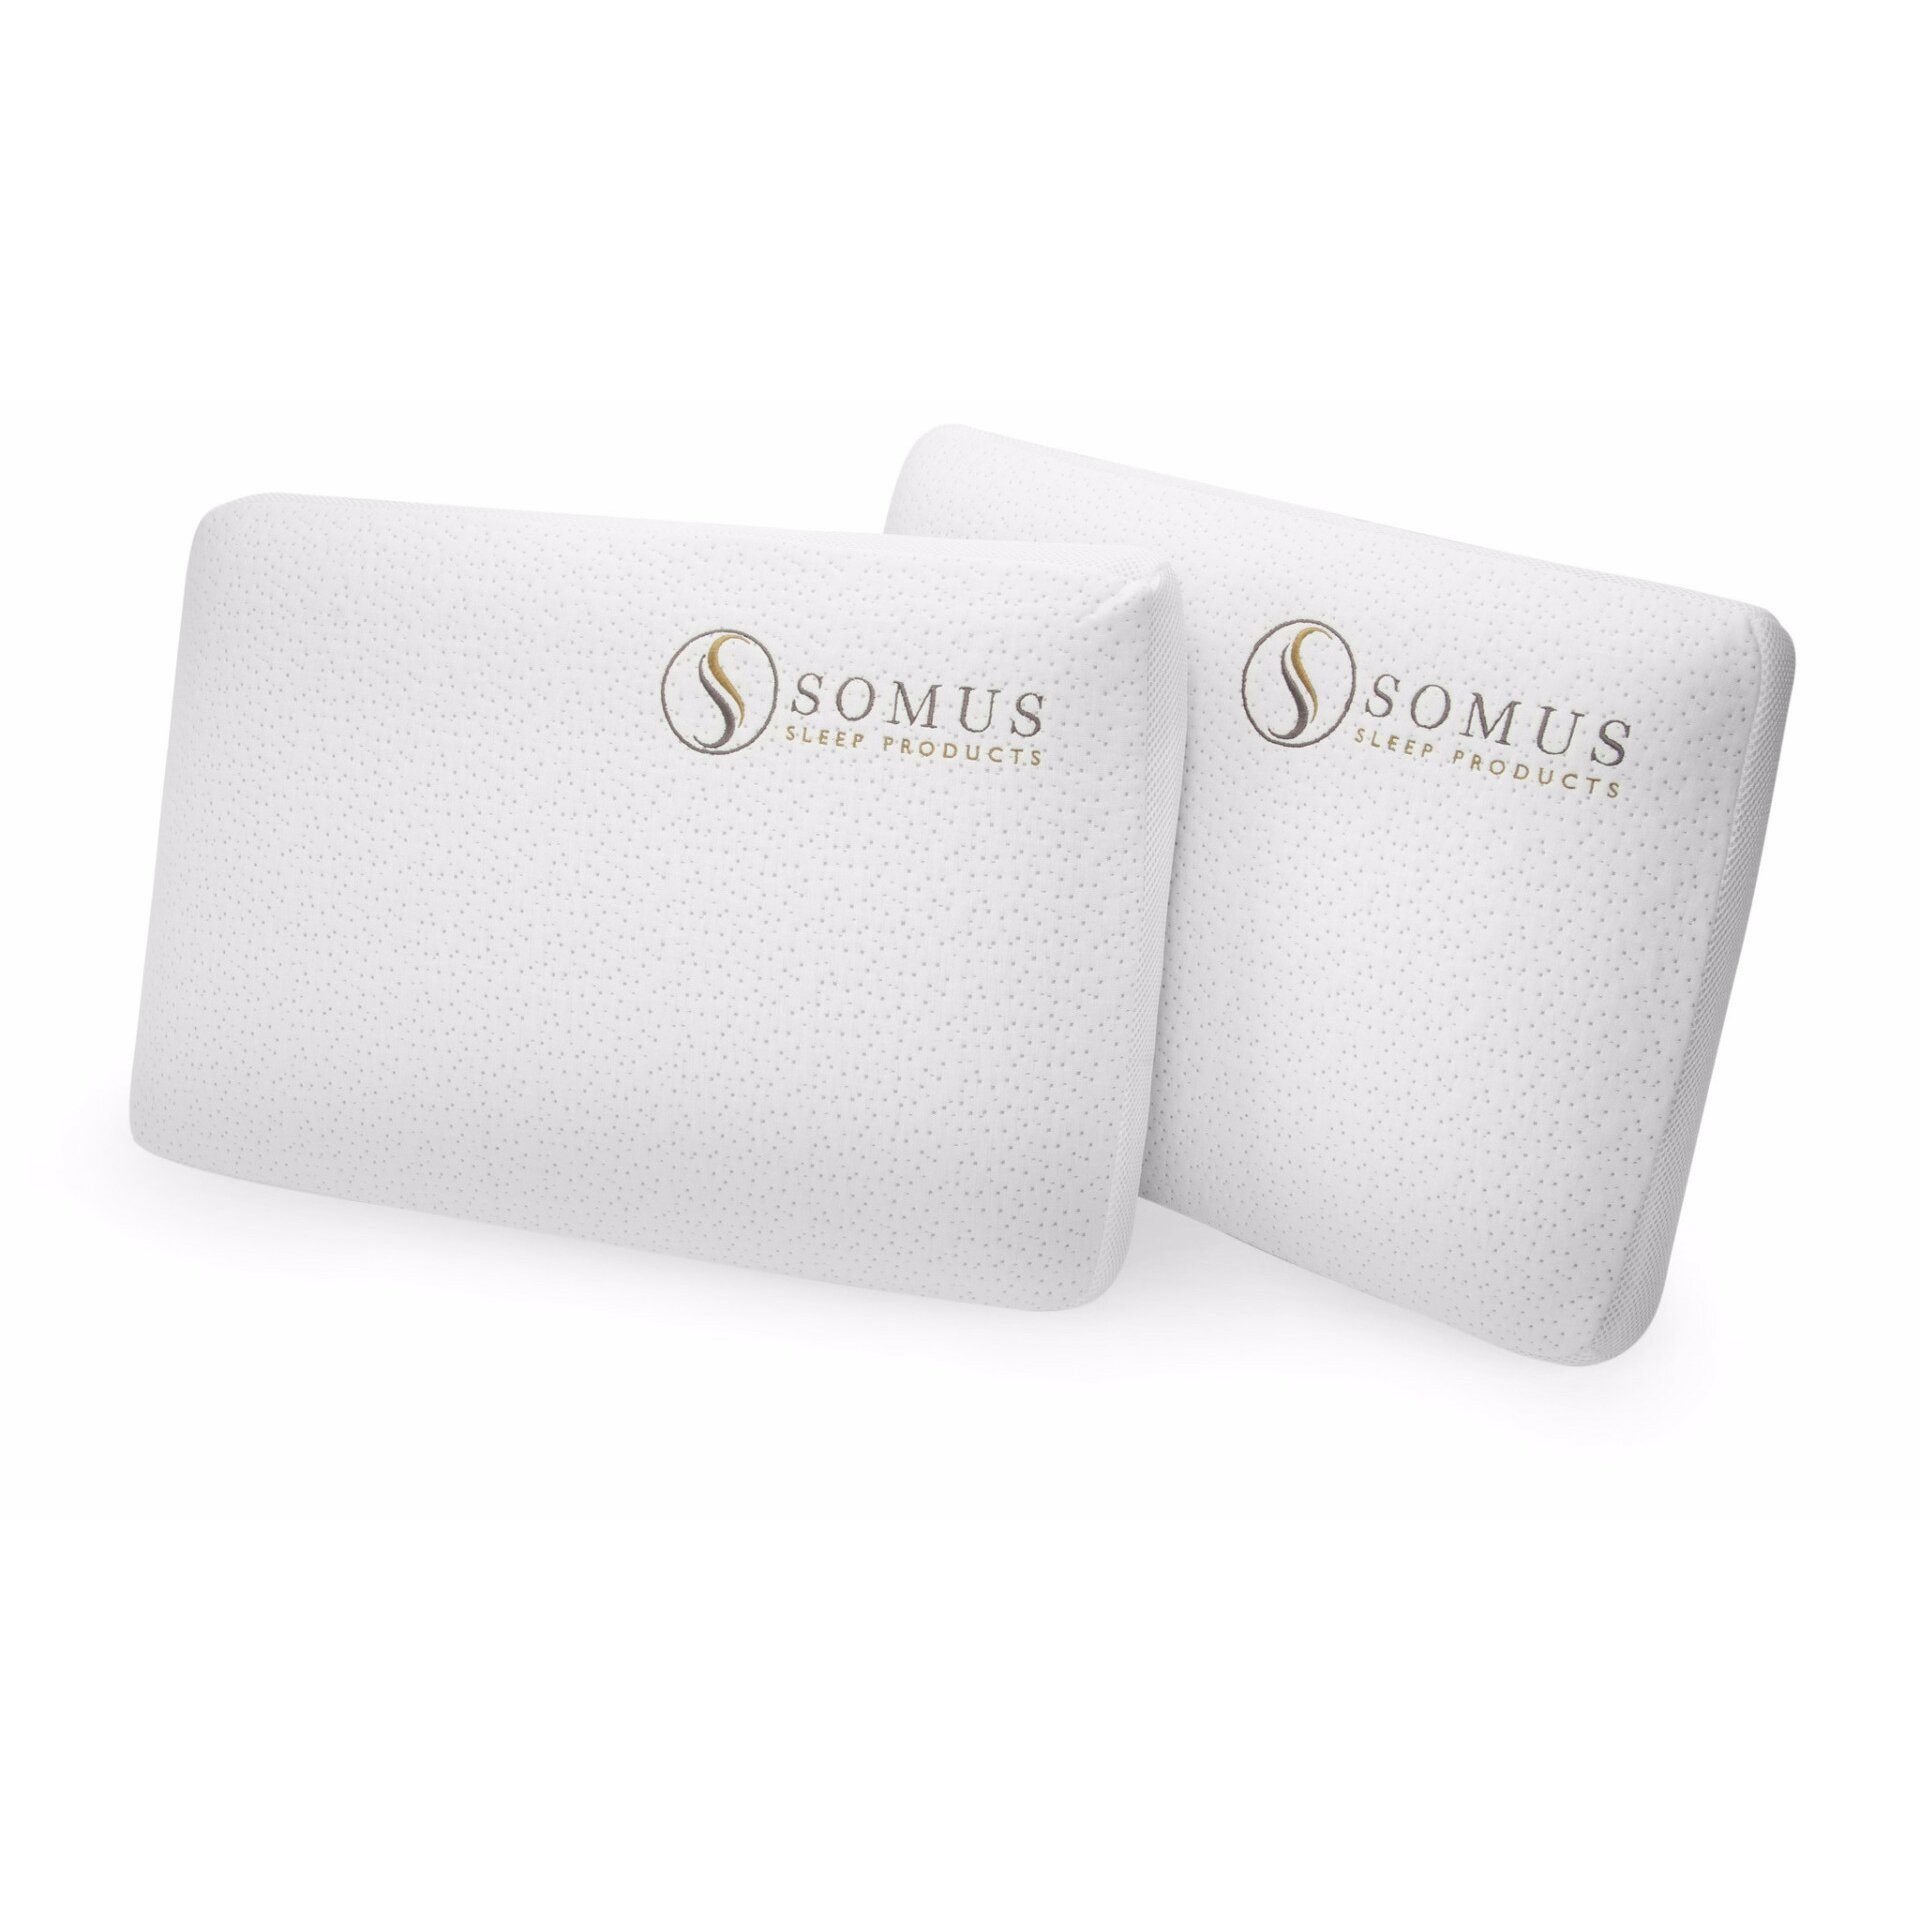 Spa Supreme Traditional Memory Foam Pillow : Somus Somus Supreme Memory Foam Pillow & Reviews Wayfair